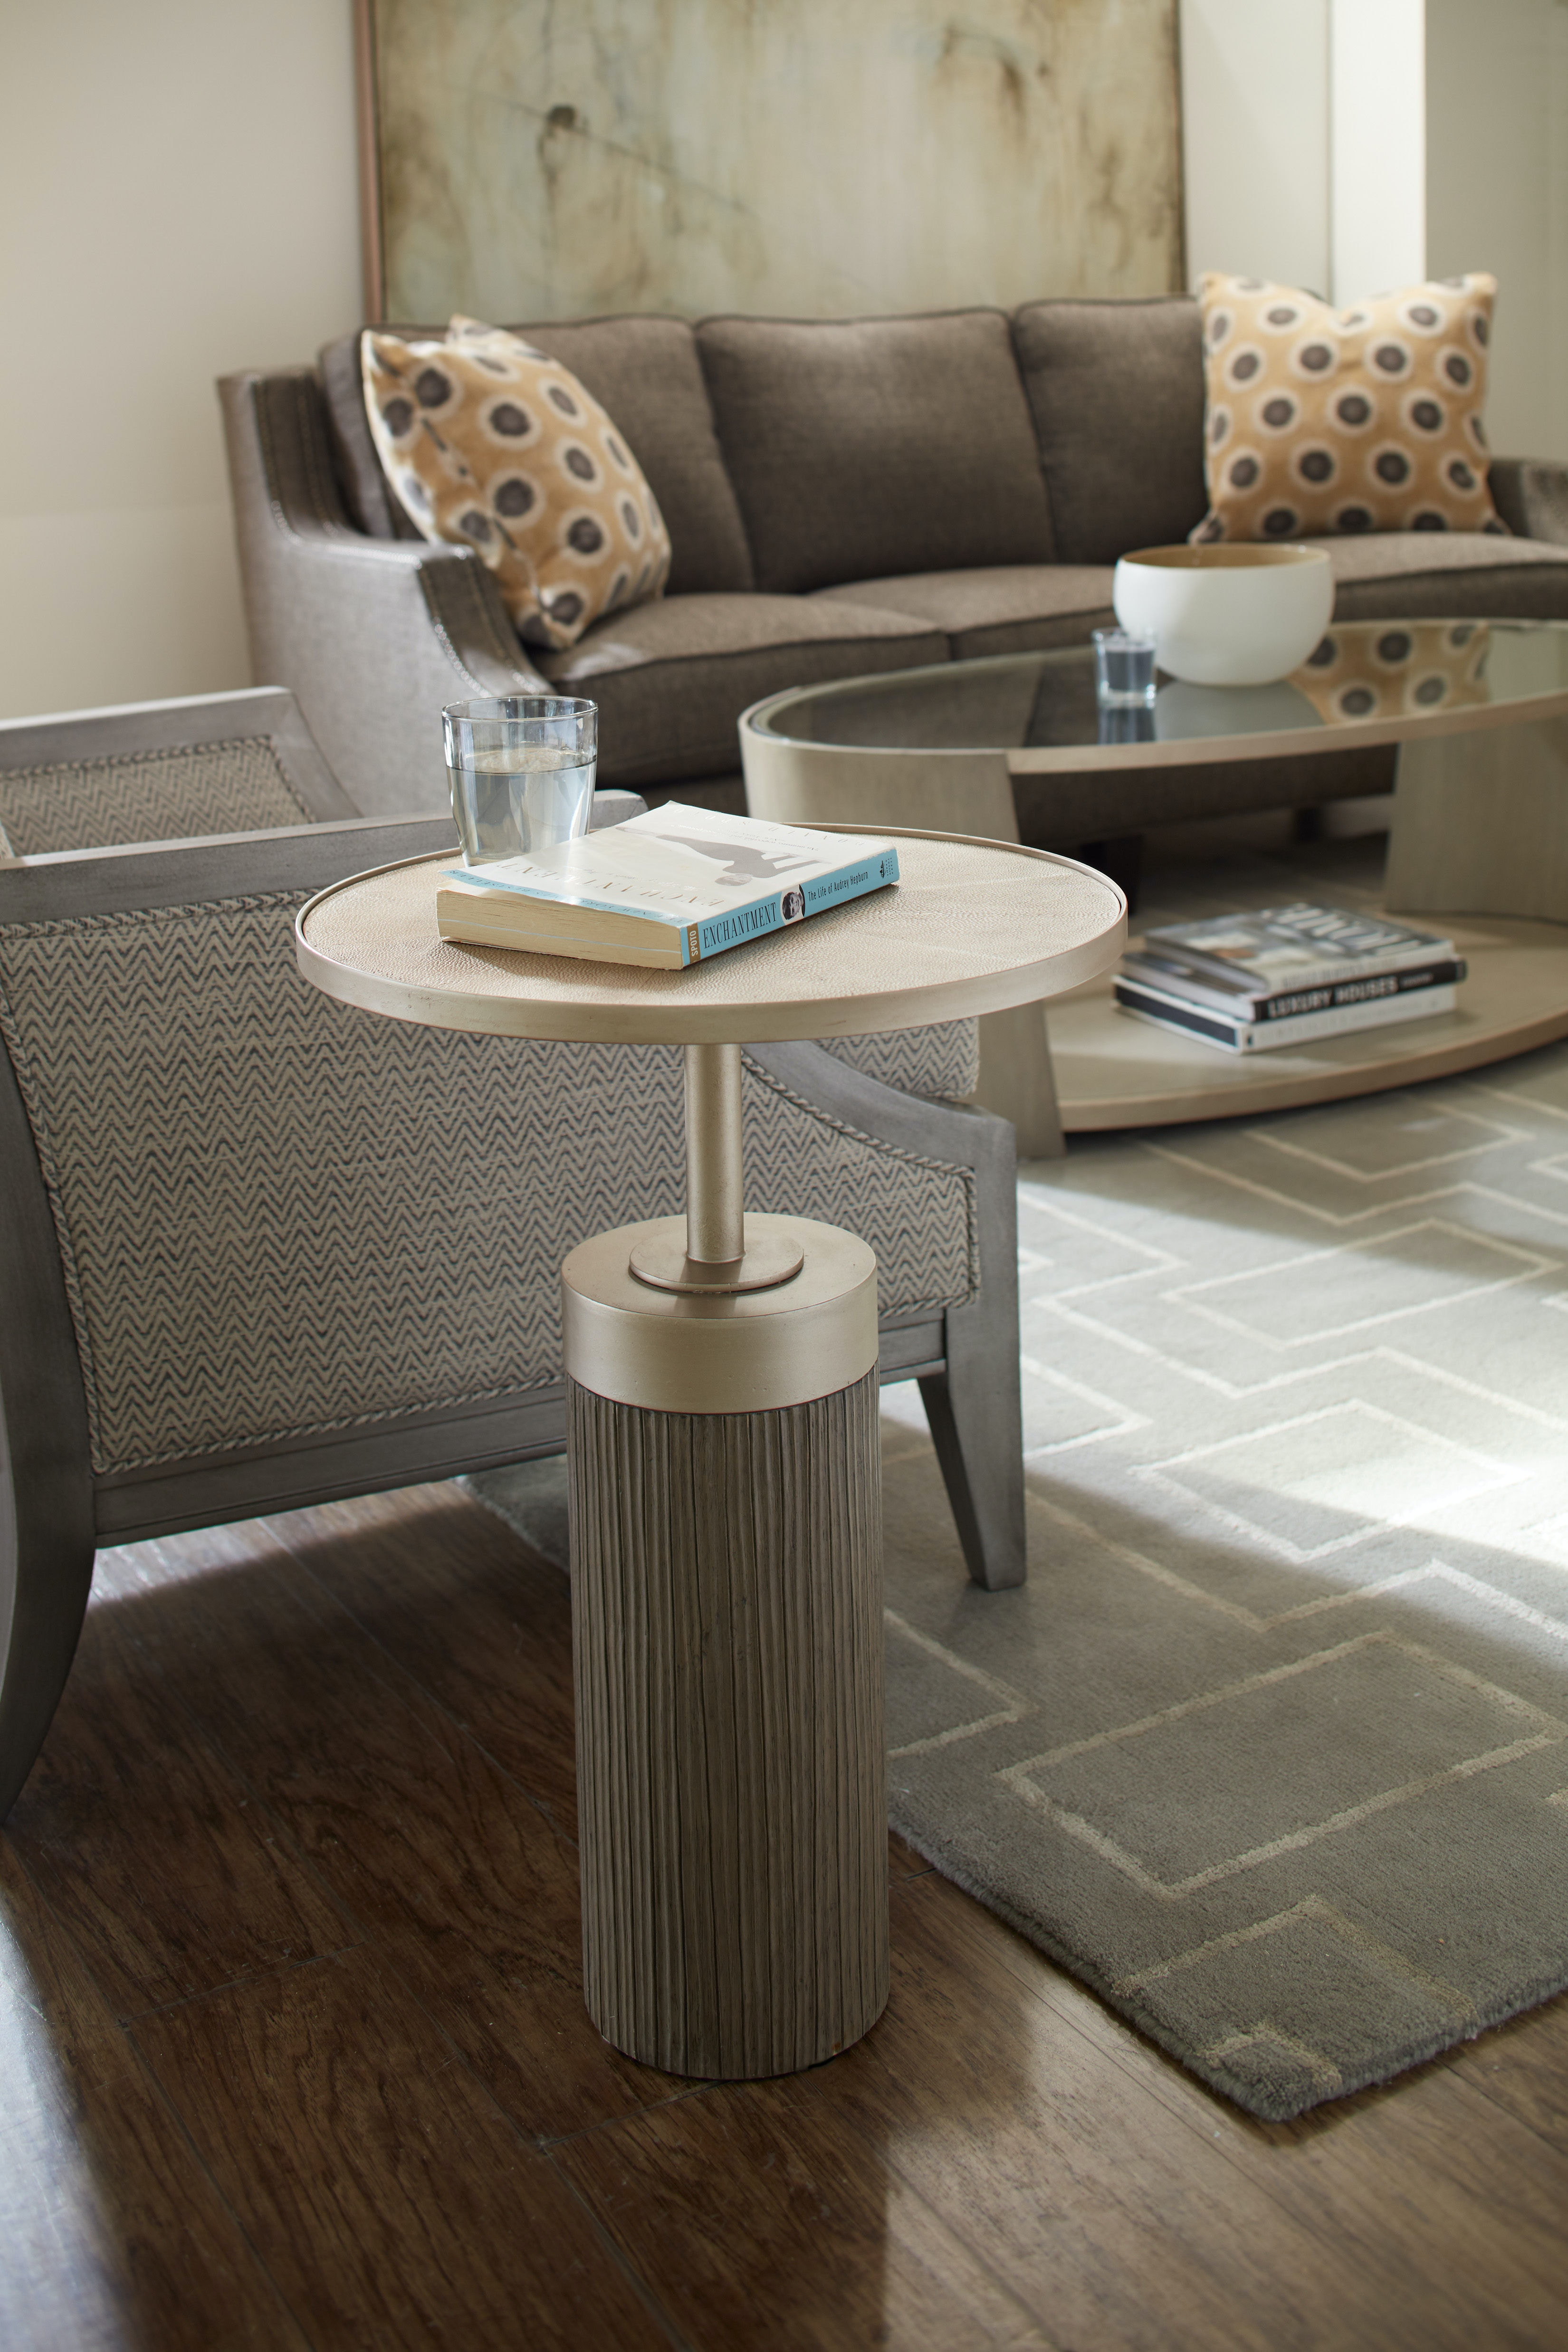 Hooker Furniture Elixir Accent Spot Table 5990 50002 DKW